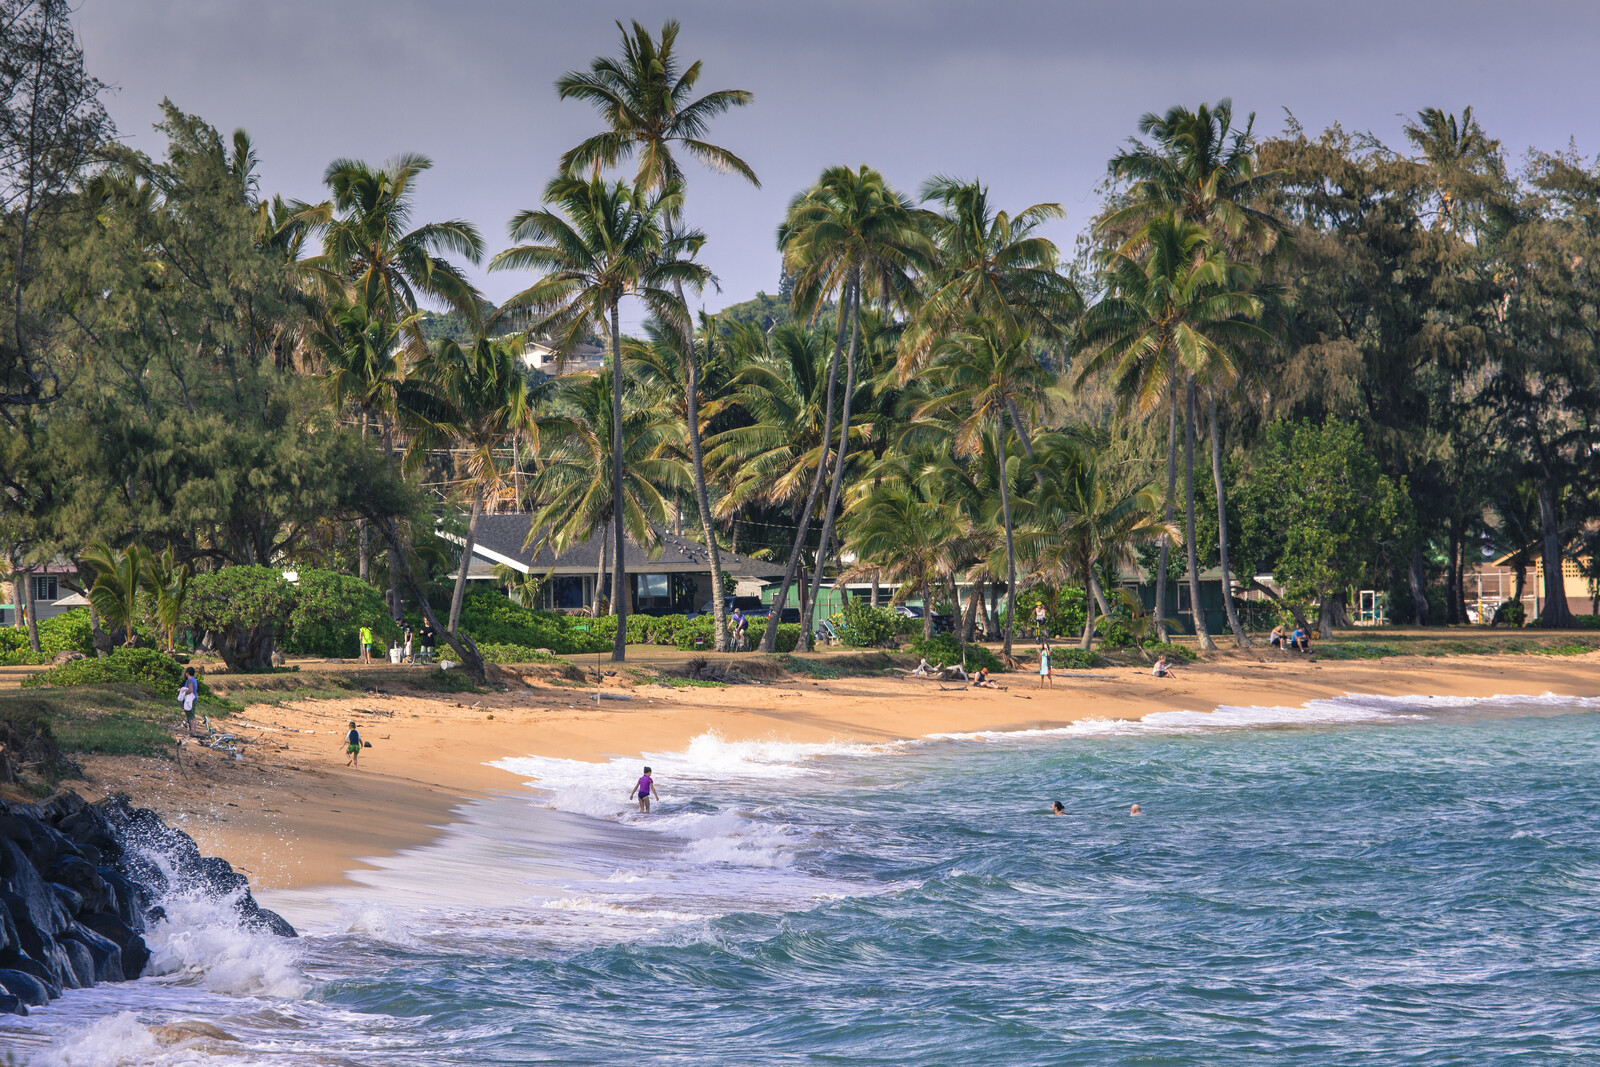 Palm trees along the beach with blue waters hitting the shoreline and houses tucked among the trees